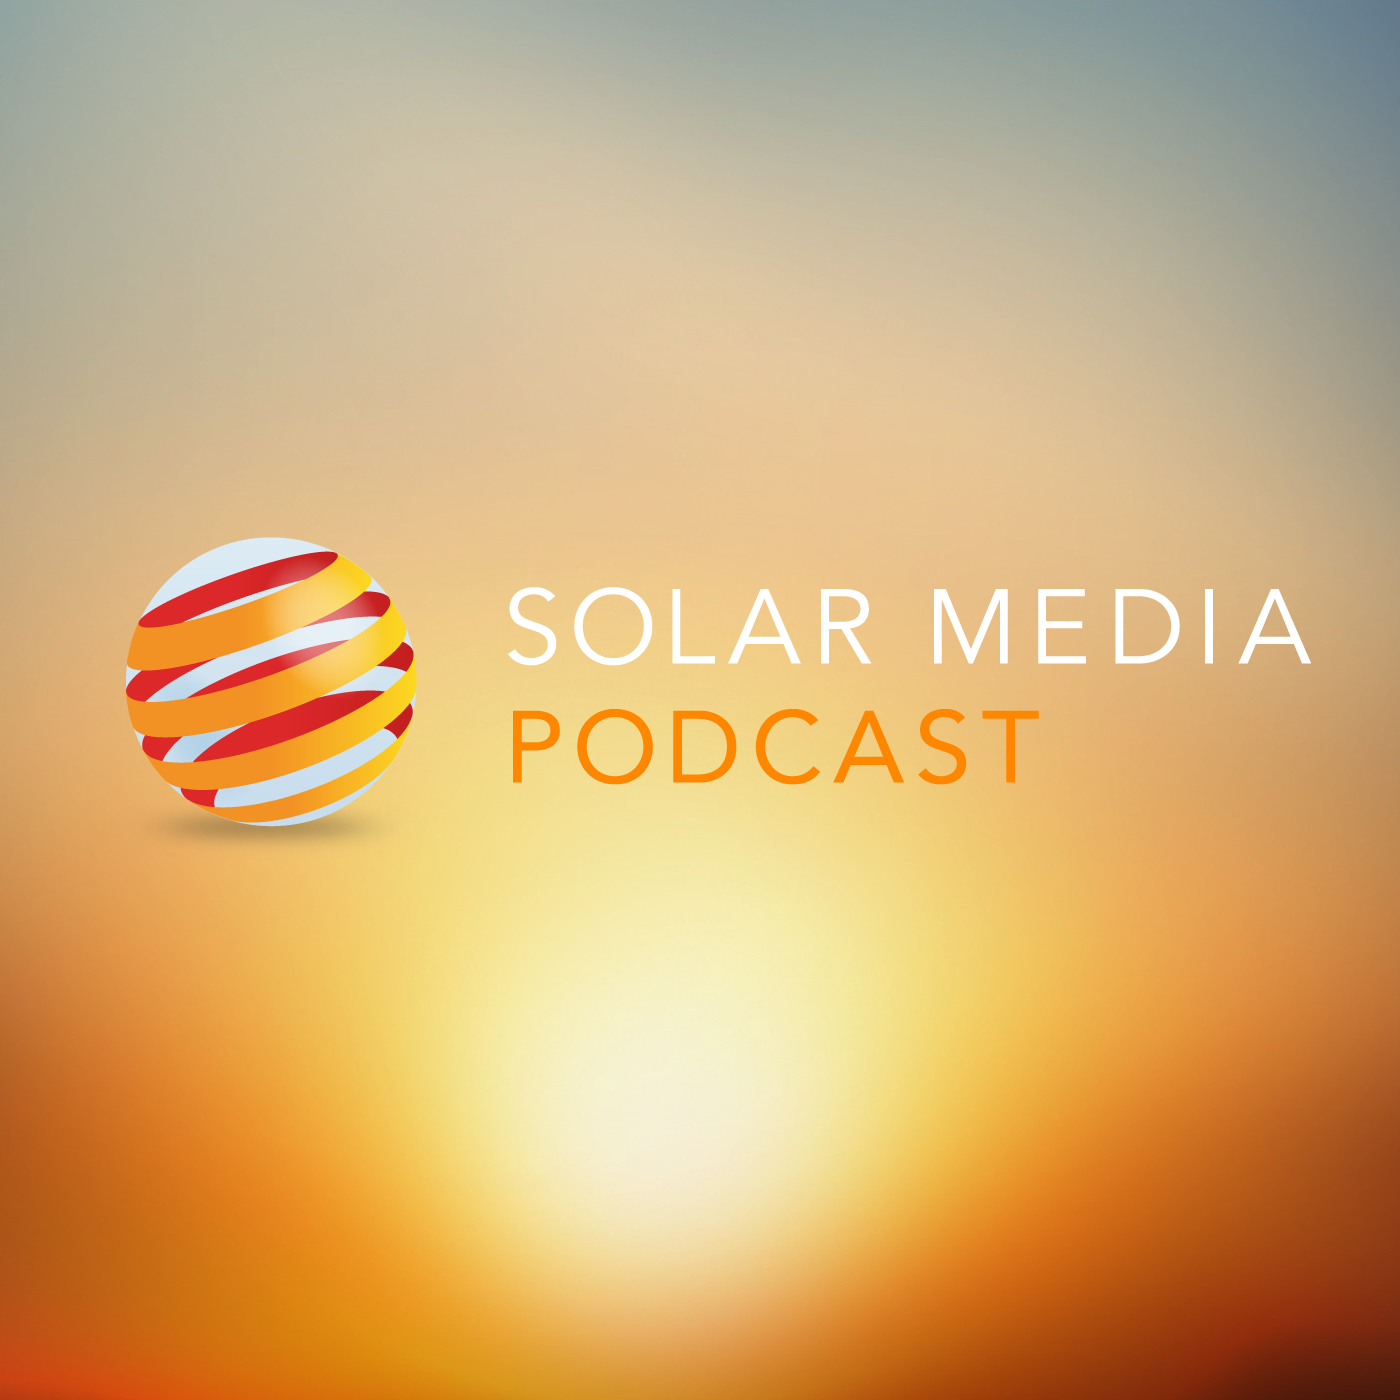 Solar Media Podcasts